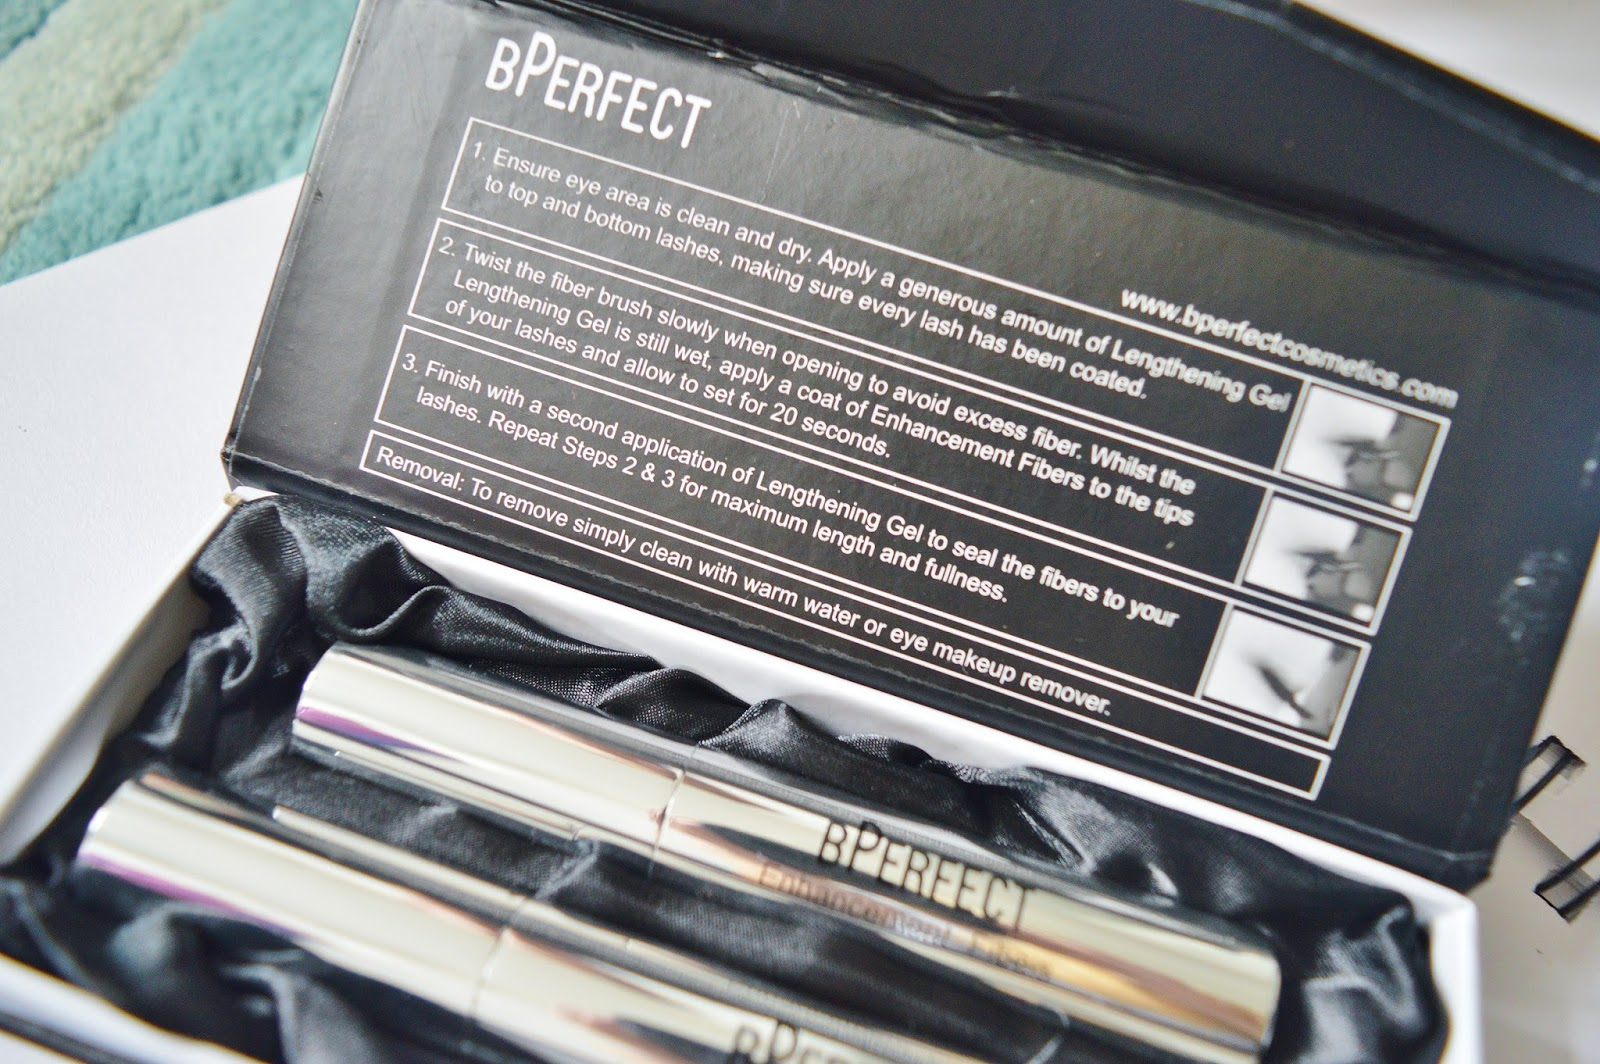 BPerfect Cosmetics - Brush On Lashes